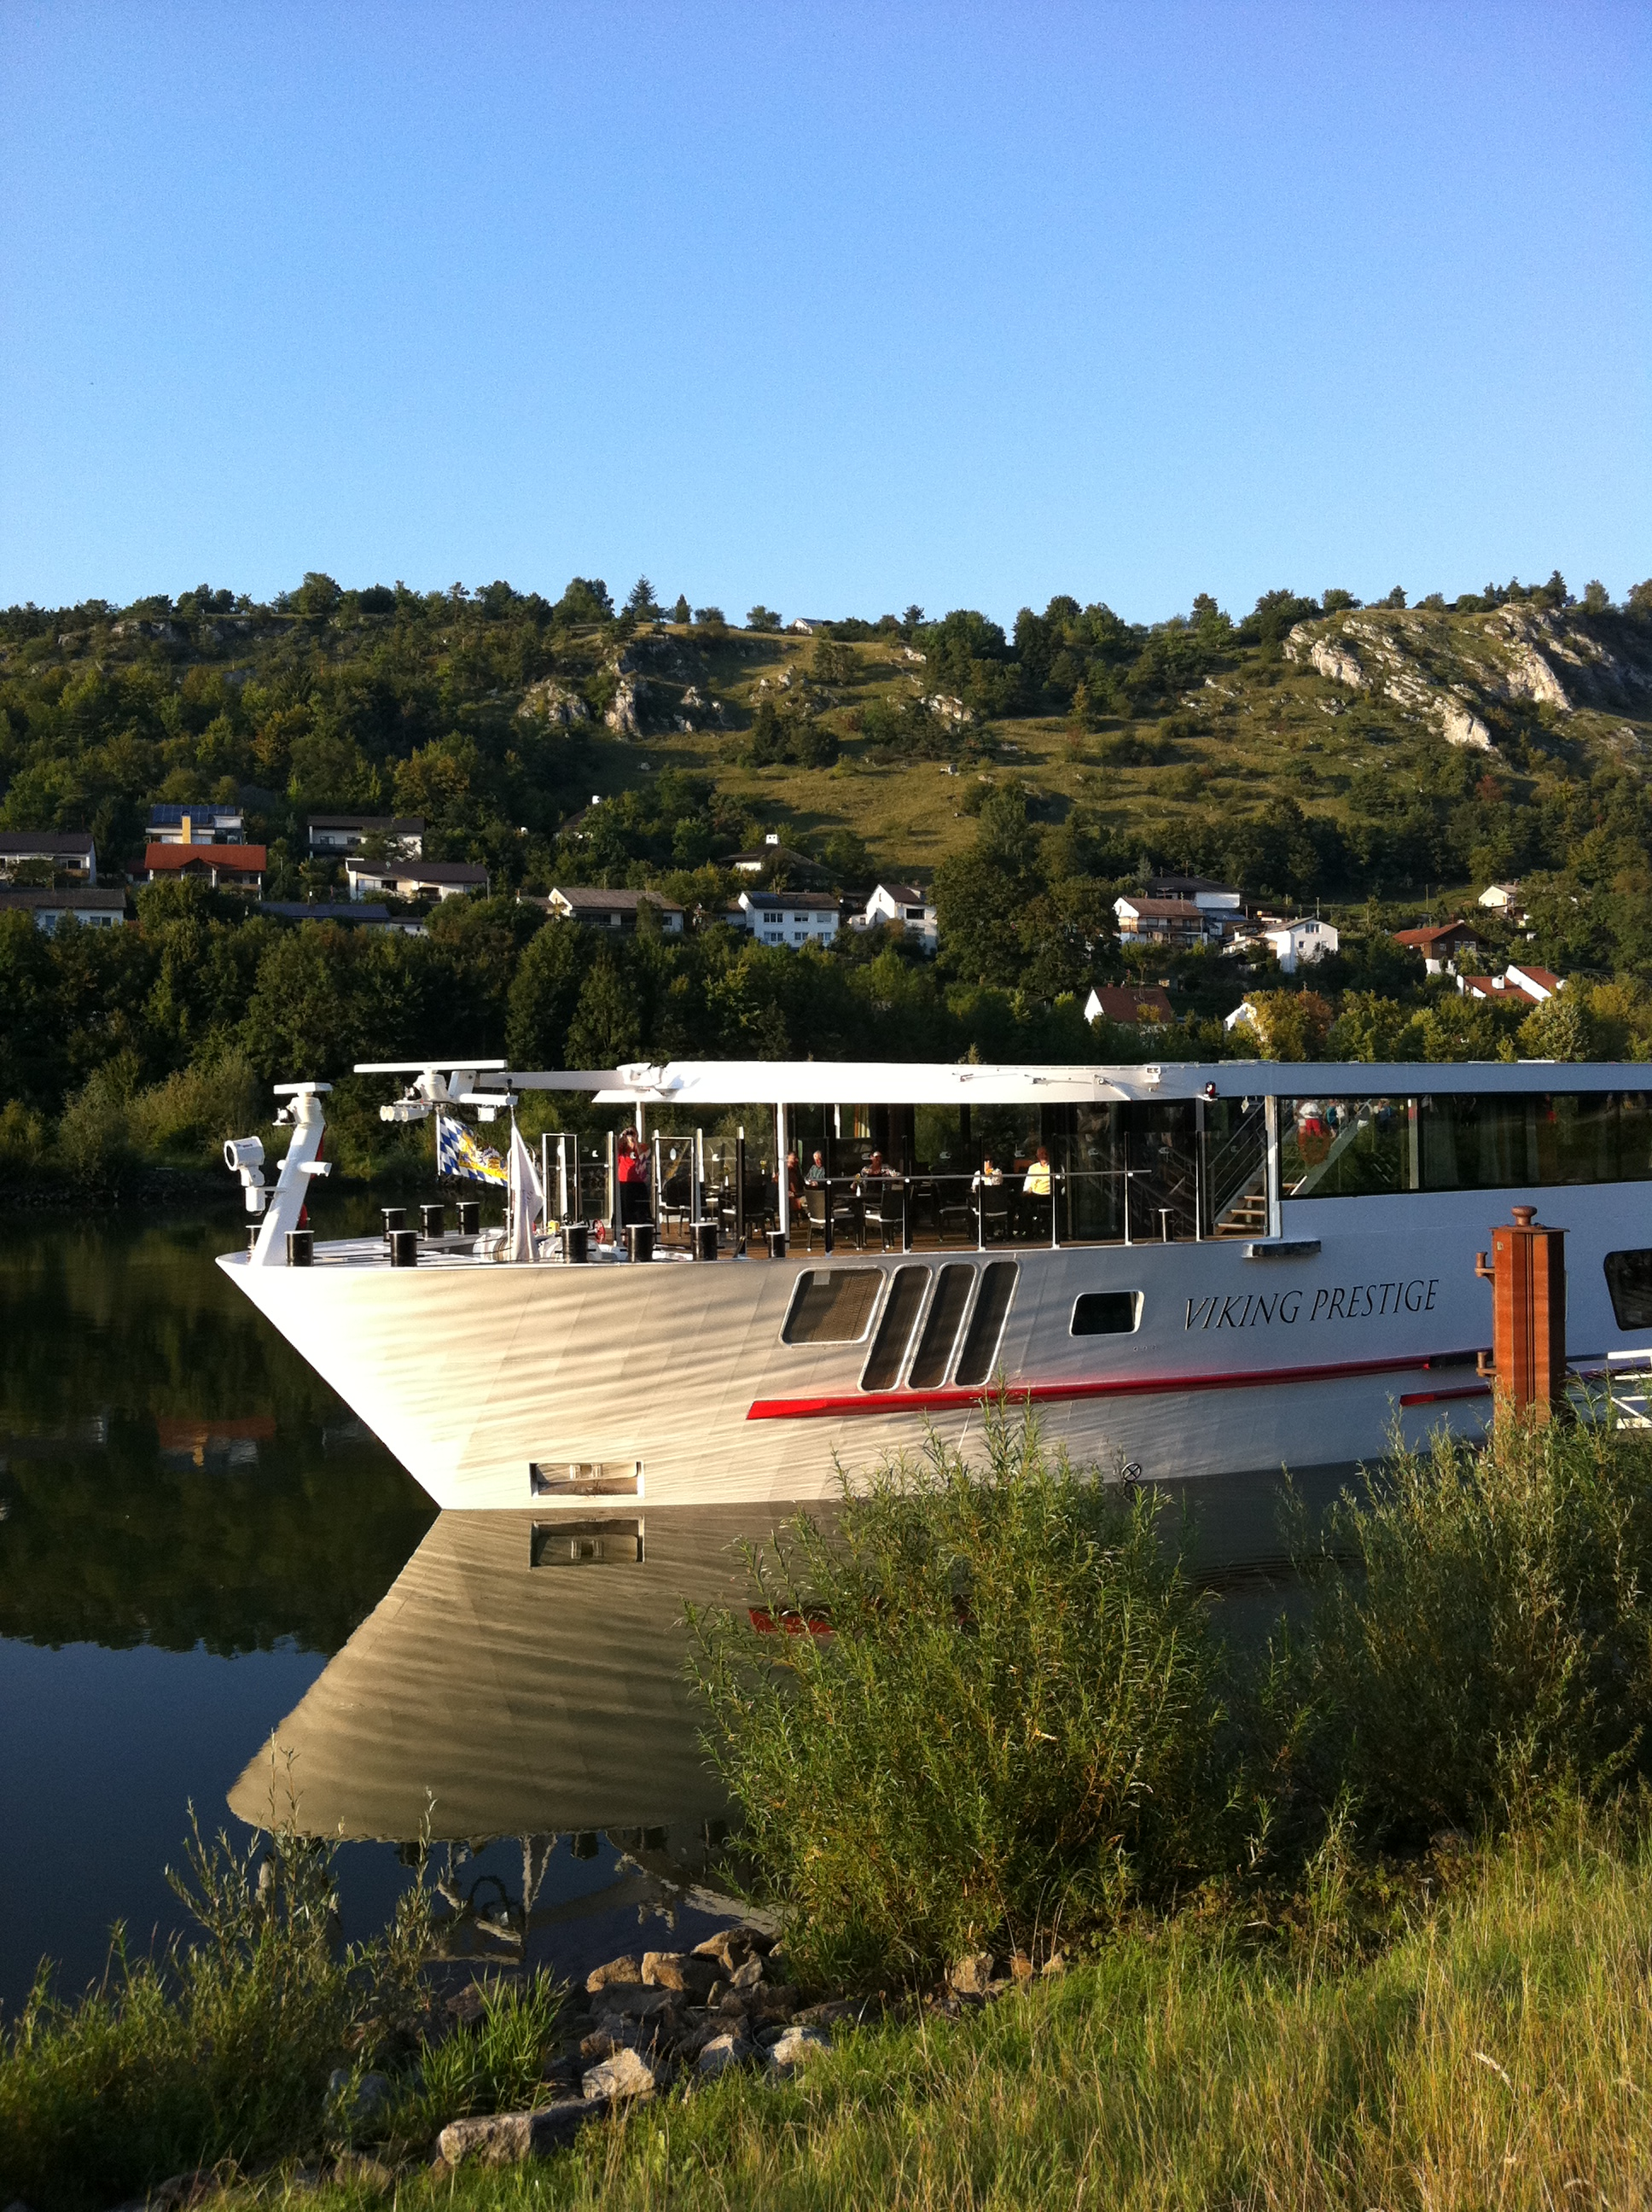 The Viking Prestige on the Danube // © 2011  Janeen Christoff